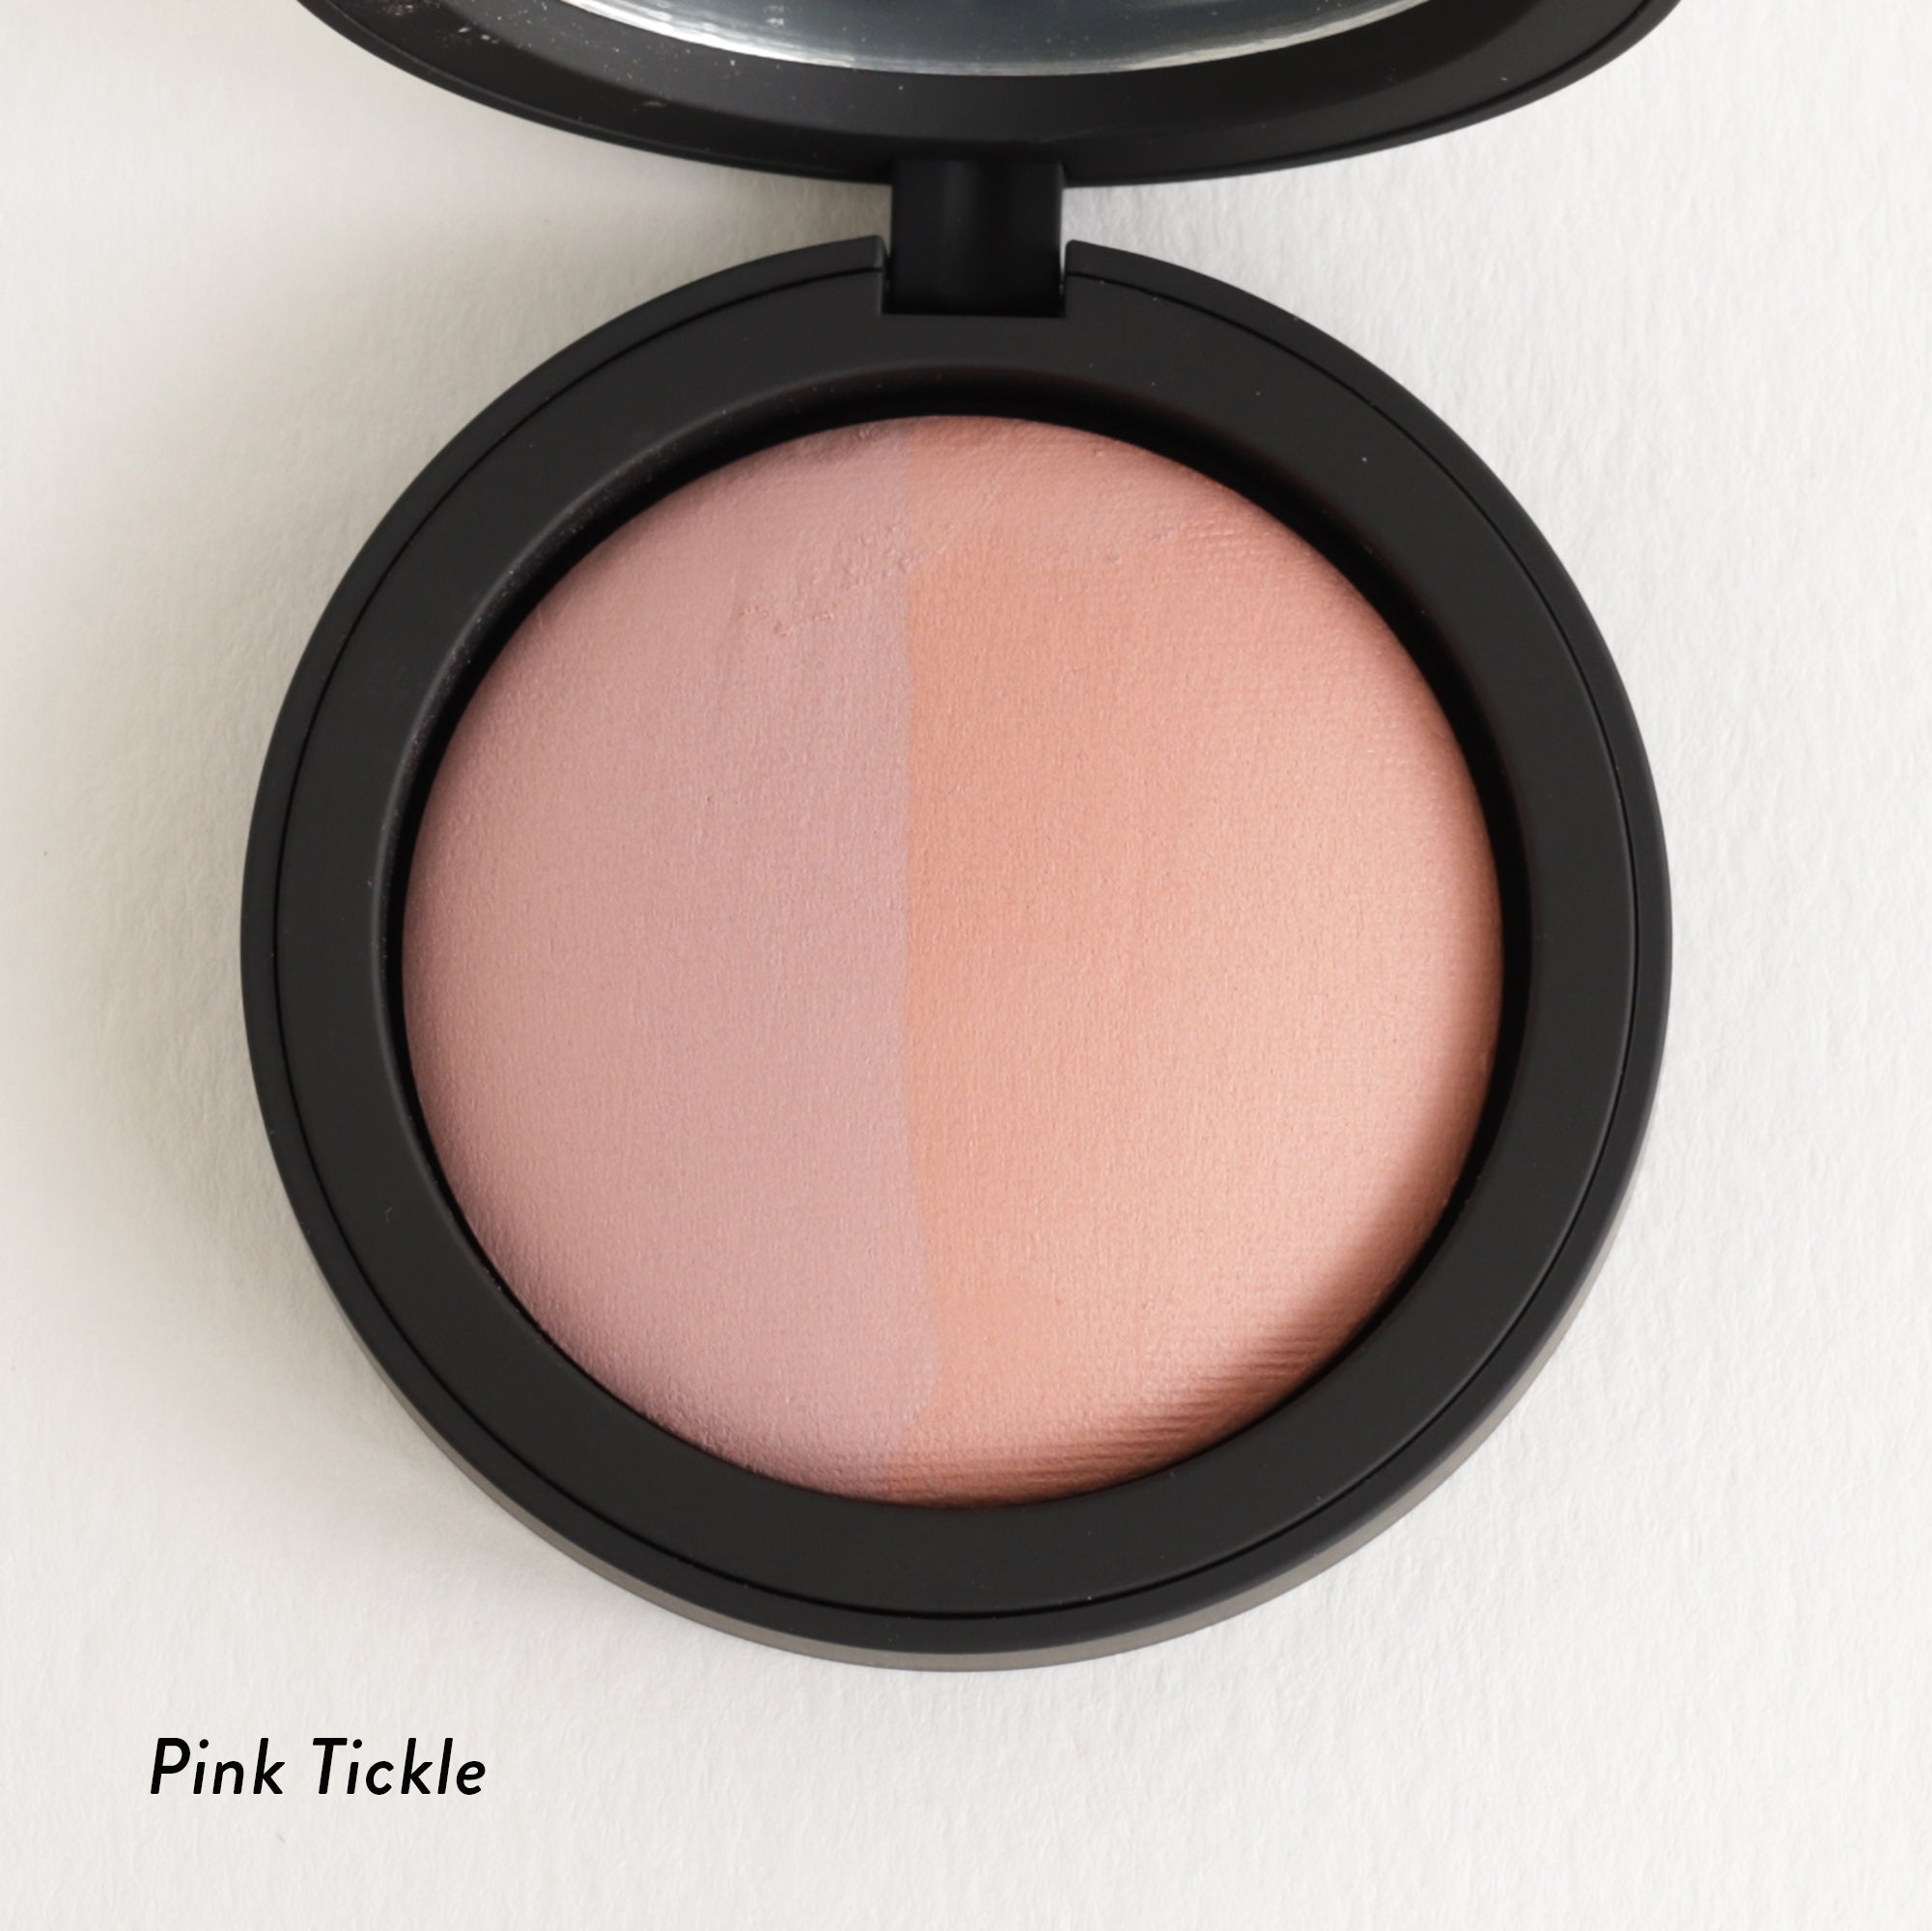 Inika Baked Mineral Blush Duo Pink Tickle